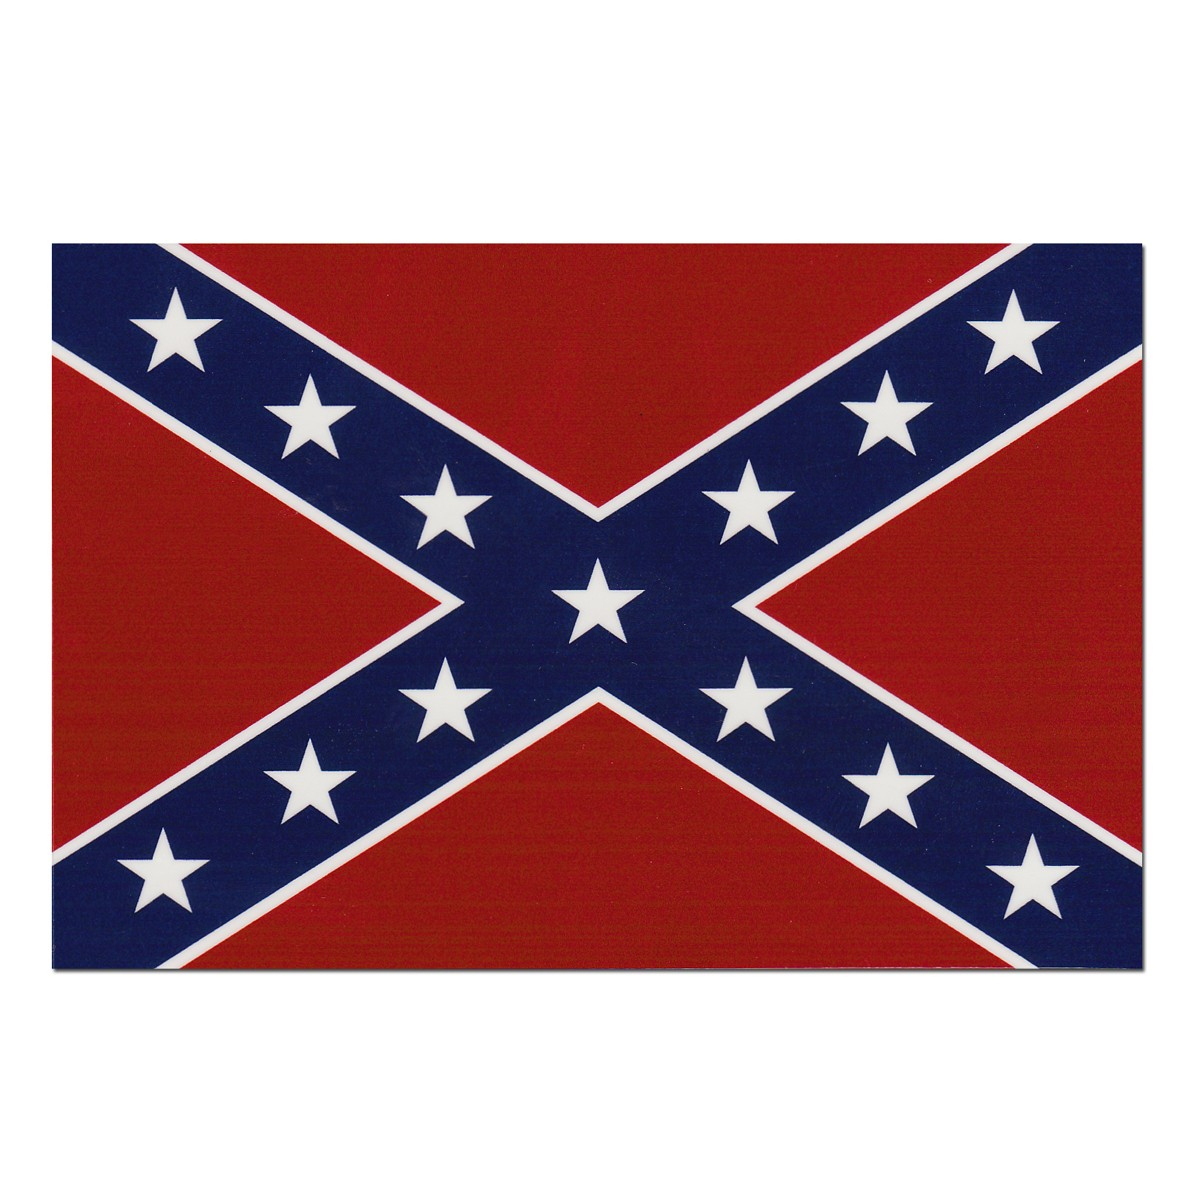 rebel flag drawing at getdrawings com free for personal use rebel rh getdrawings com free clip art confederate flag